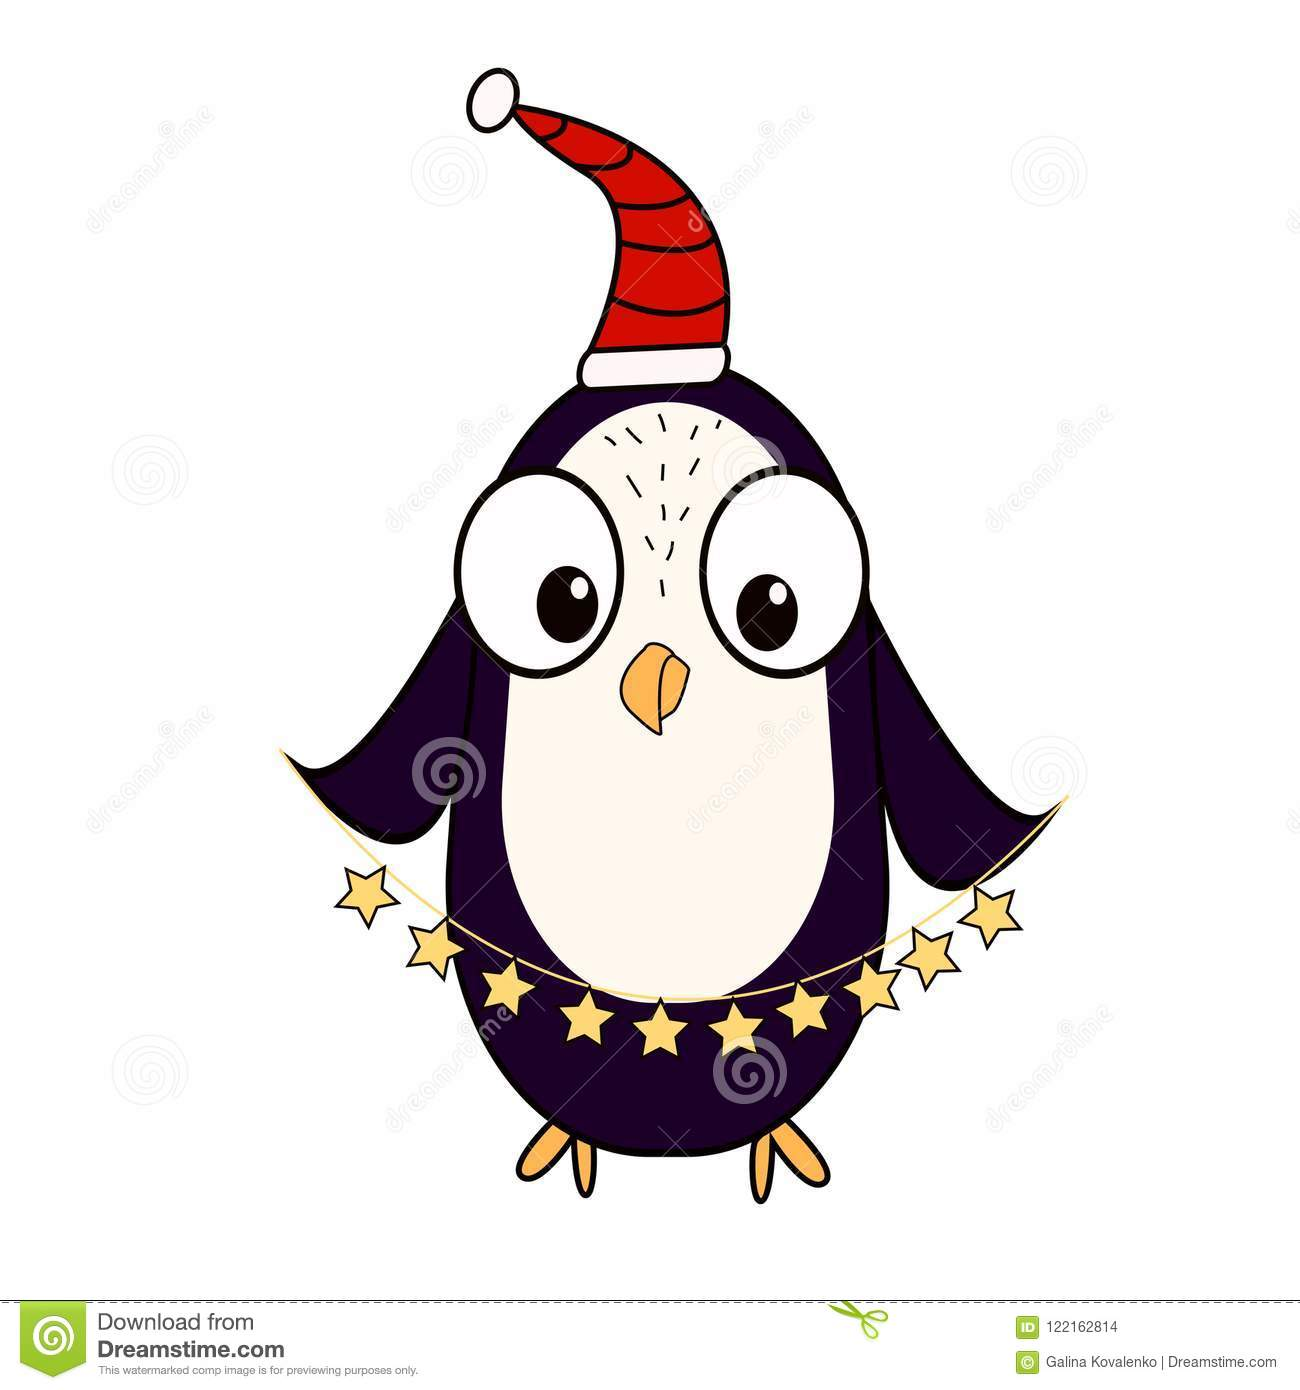 a cartoon penguin in the cap of santas assistant character for christmas and